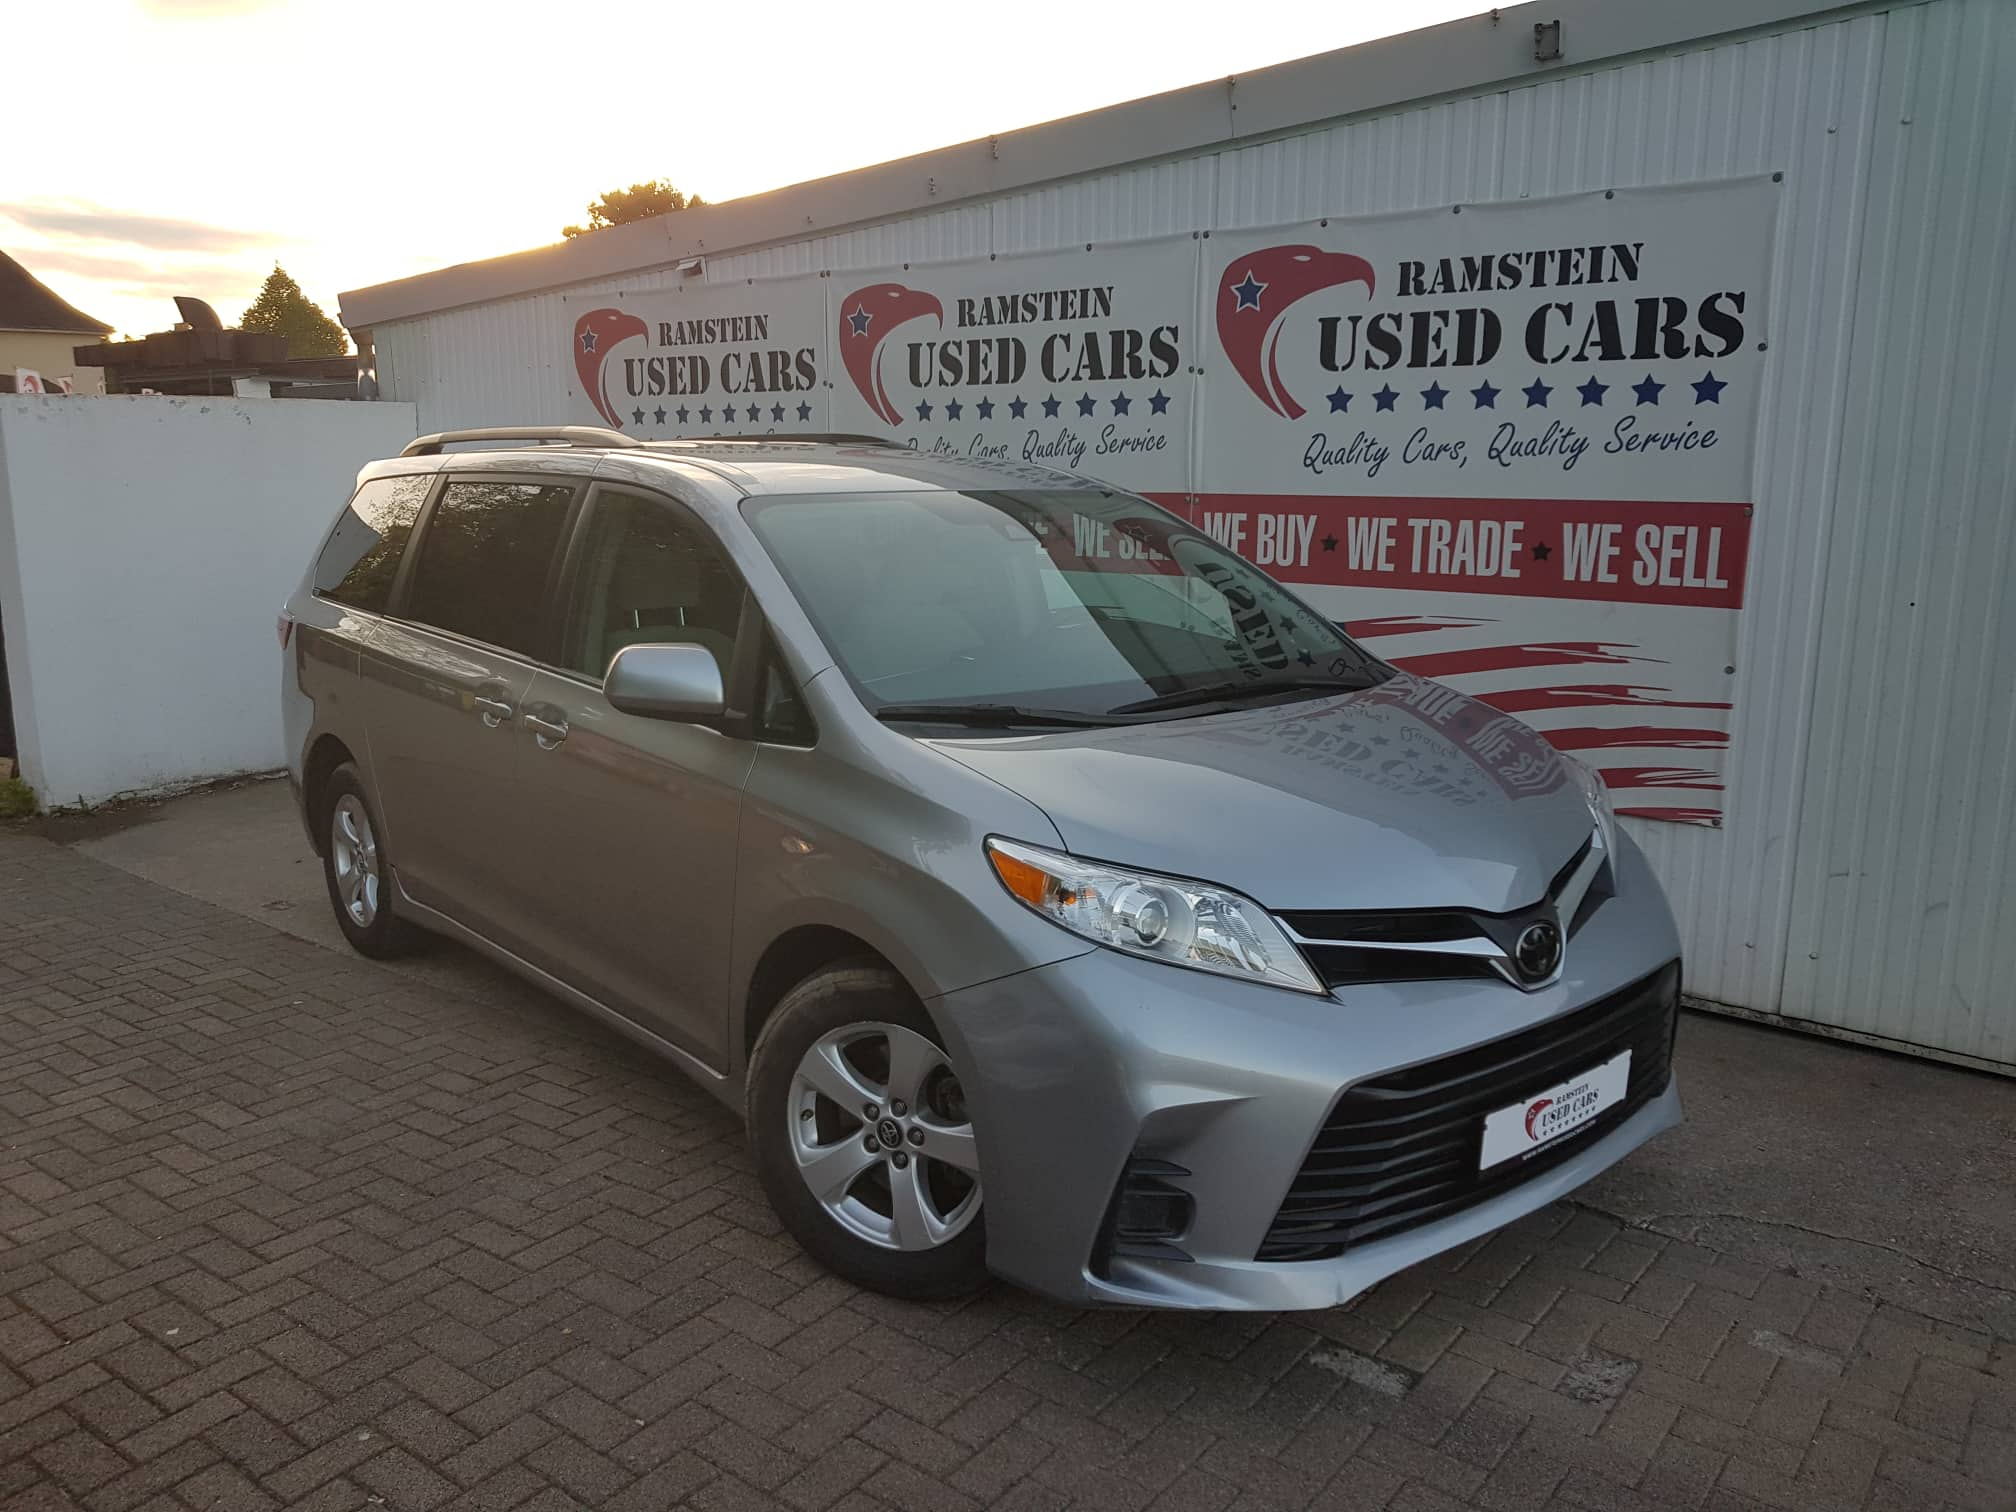 8 Passenger Cars for Sale Near Me Unique 2018 toyota Sienna Le 8 Passenger Ramstein Used Cars